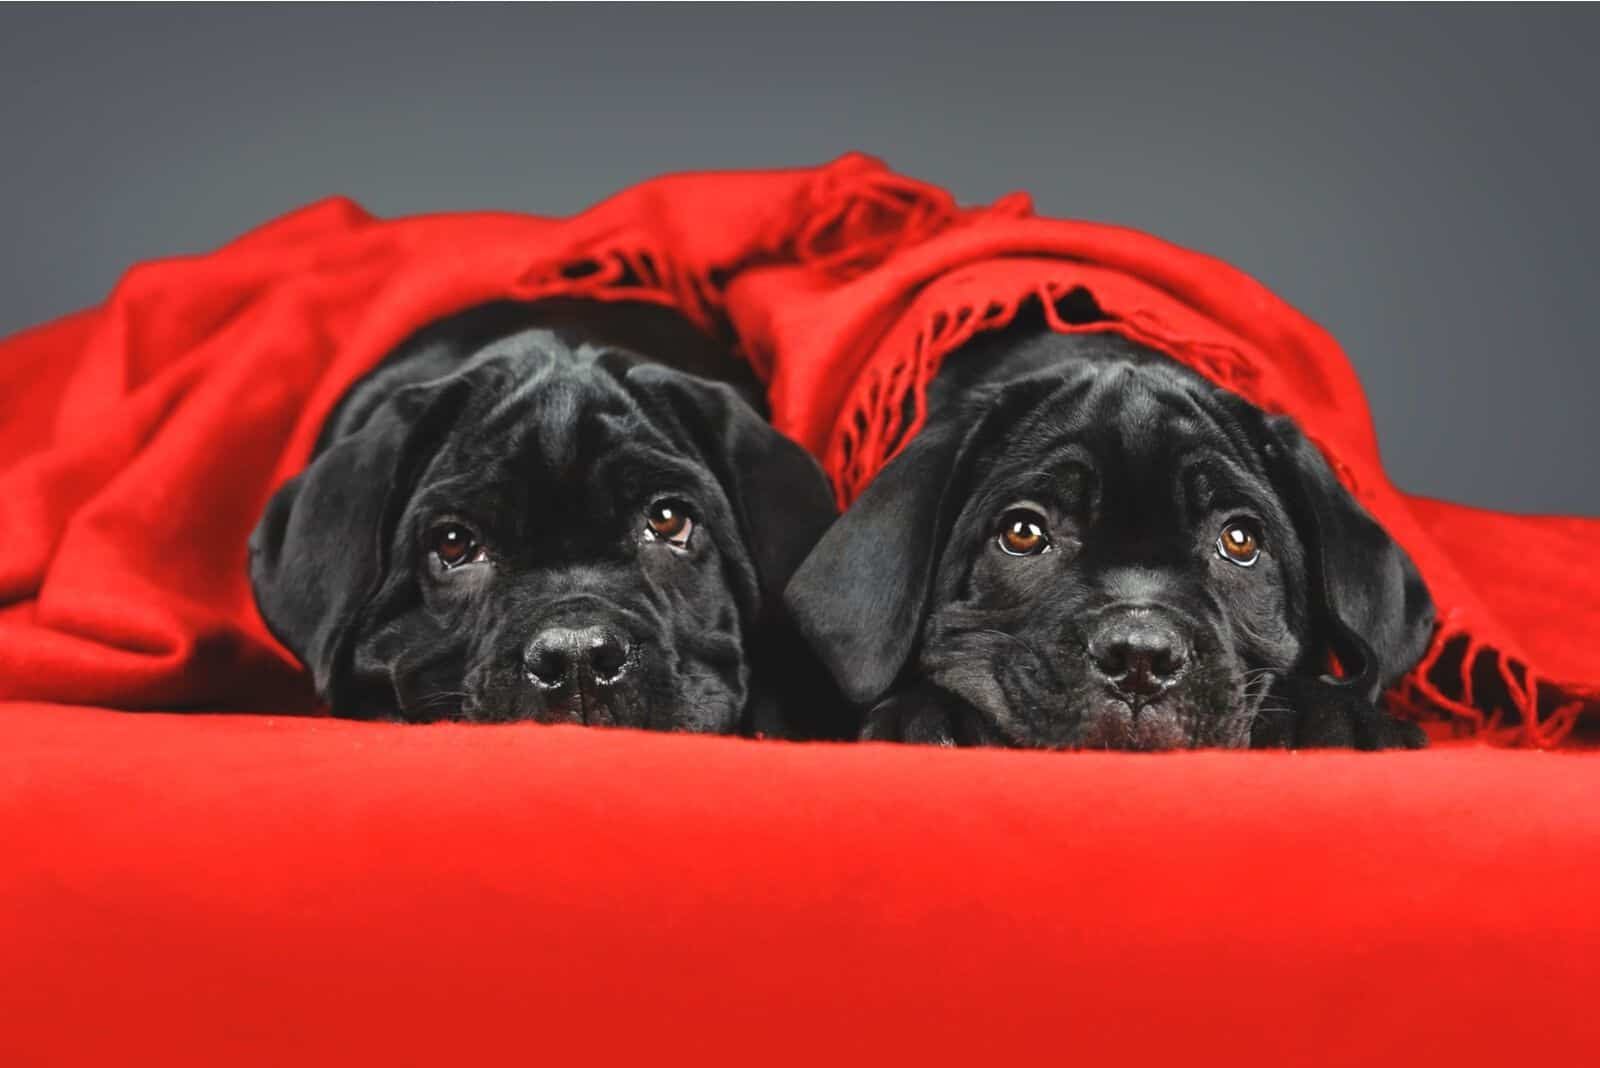 two black cane corso puppies under red blanket